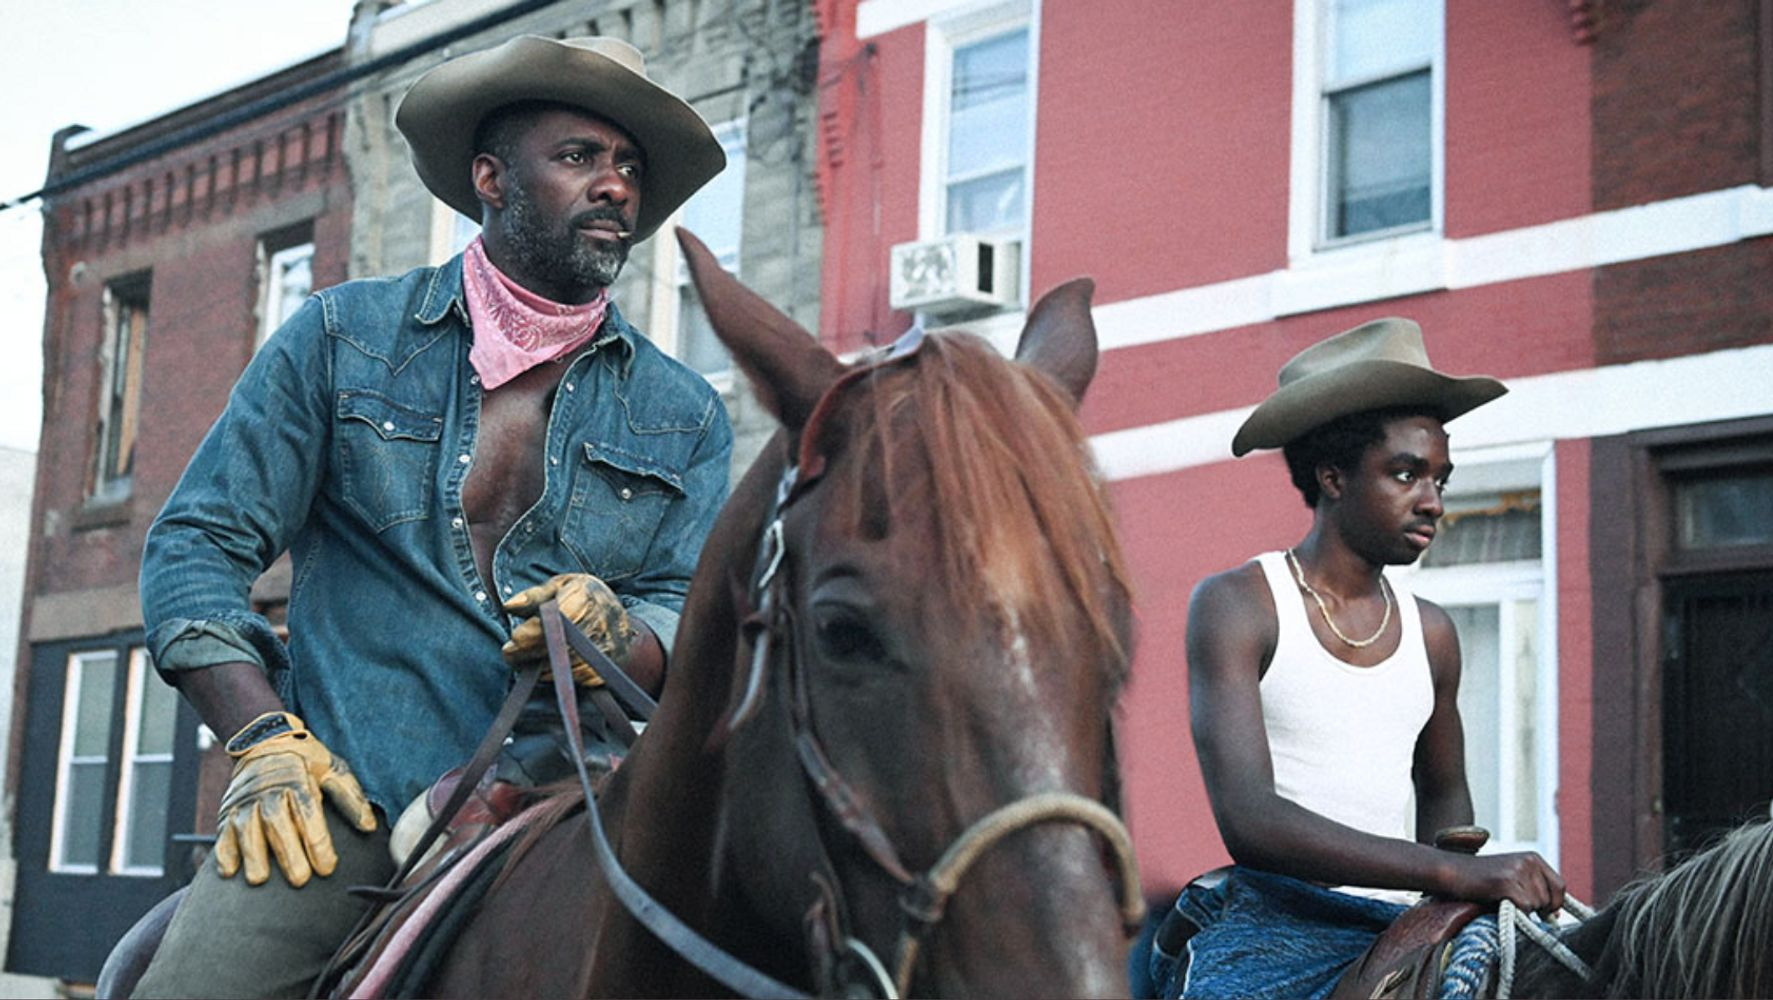 'Concrete Cowboy' Film Starring Idris Elba To Hit Netflix Next Year